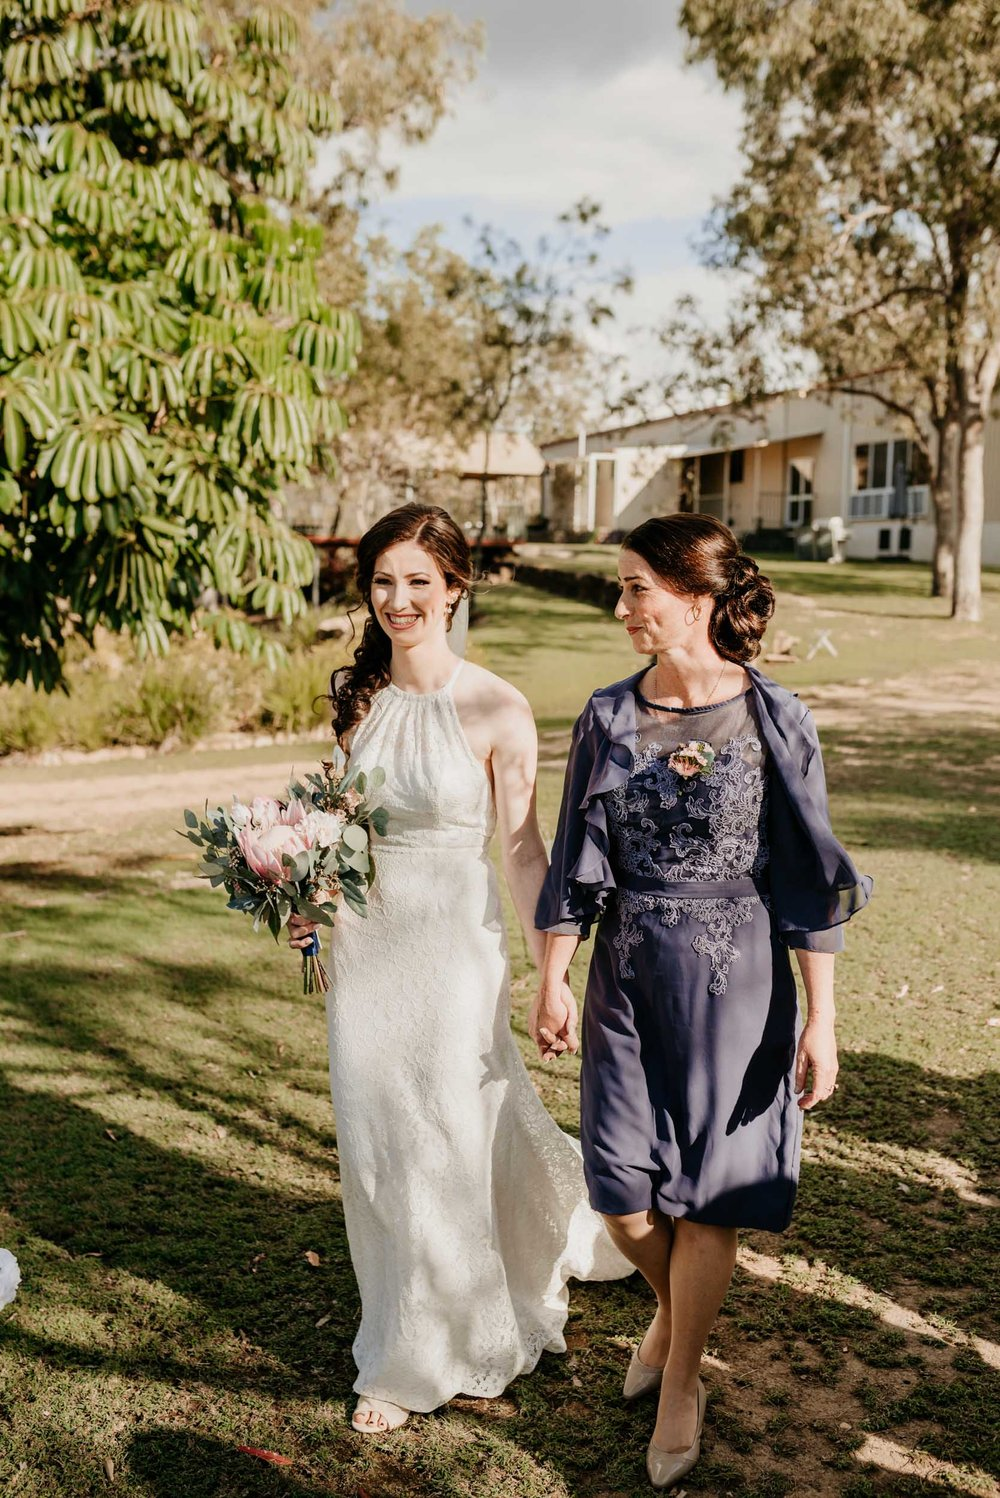 The Raw Photographer - Cairns Wedding Photographer - Atherton Tablelands Venue - Mareeba Photography-28.jpg